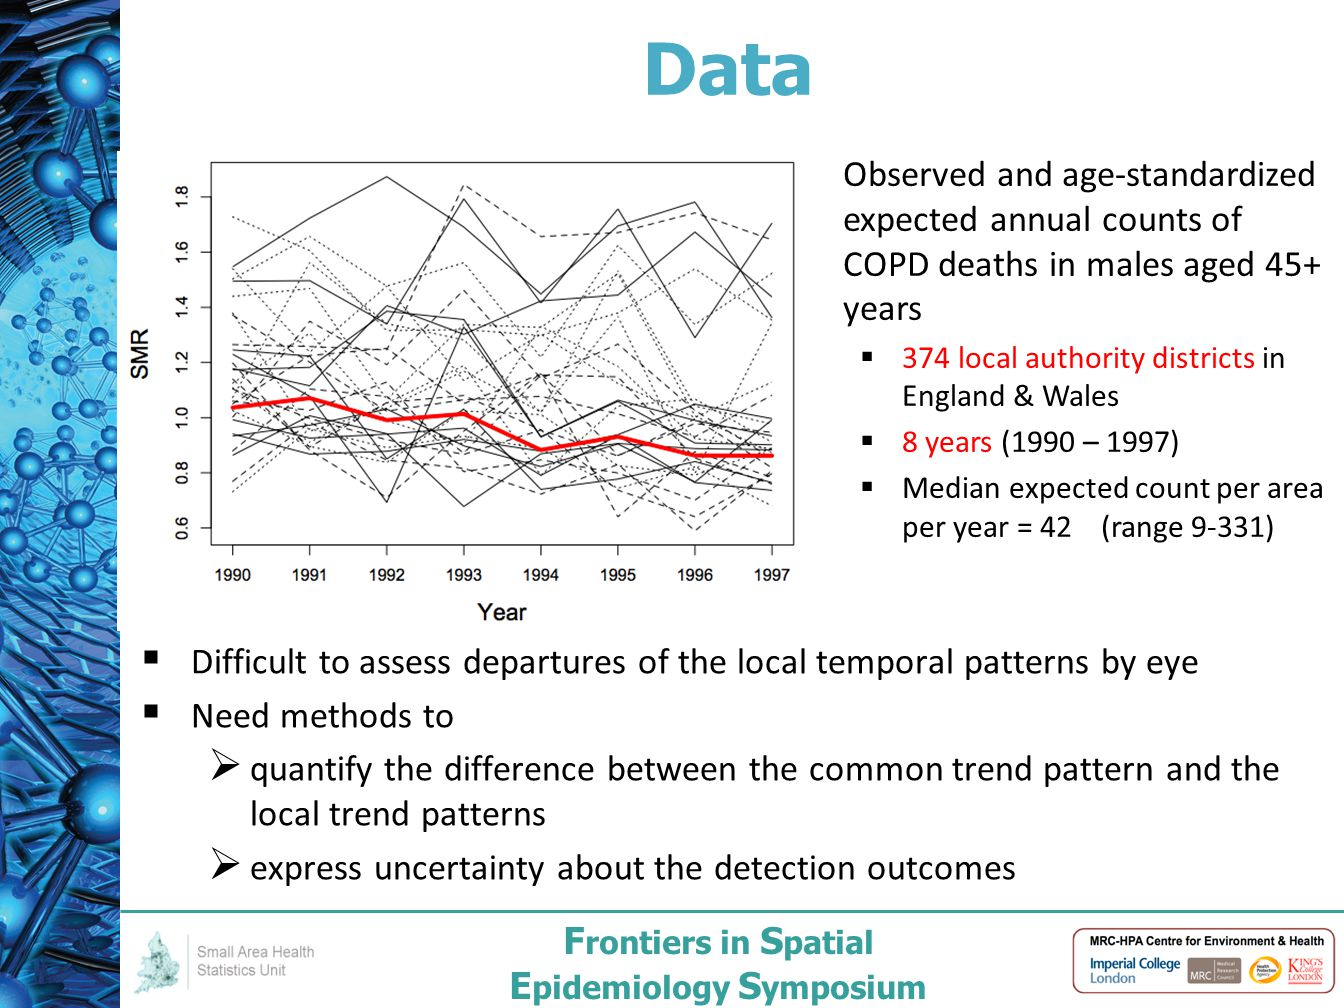 F rontiers in S patial E pidemiology S ymposium Data Observed and age-standardized expected annual counts of COPD deaths in males aged 45+ years  374 local authority districts in England & Wales  8 years (1990 – 1997)  Median expected count per area per year = 42 (range 9-331)  Difficult to assess departures of the local temporal patterns by eye  Need methods to  quantify the difference between the common trend pattern and the local trend patterns  express uncertainty about the detection outcomes